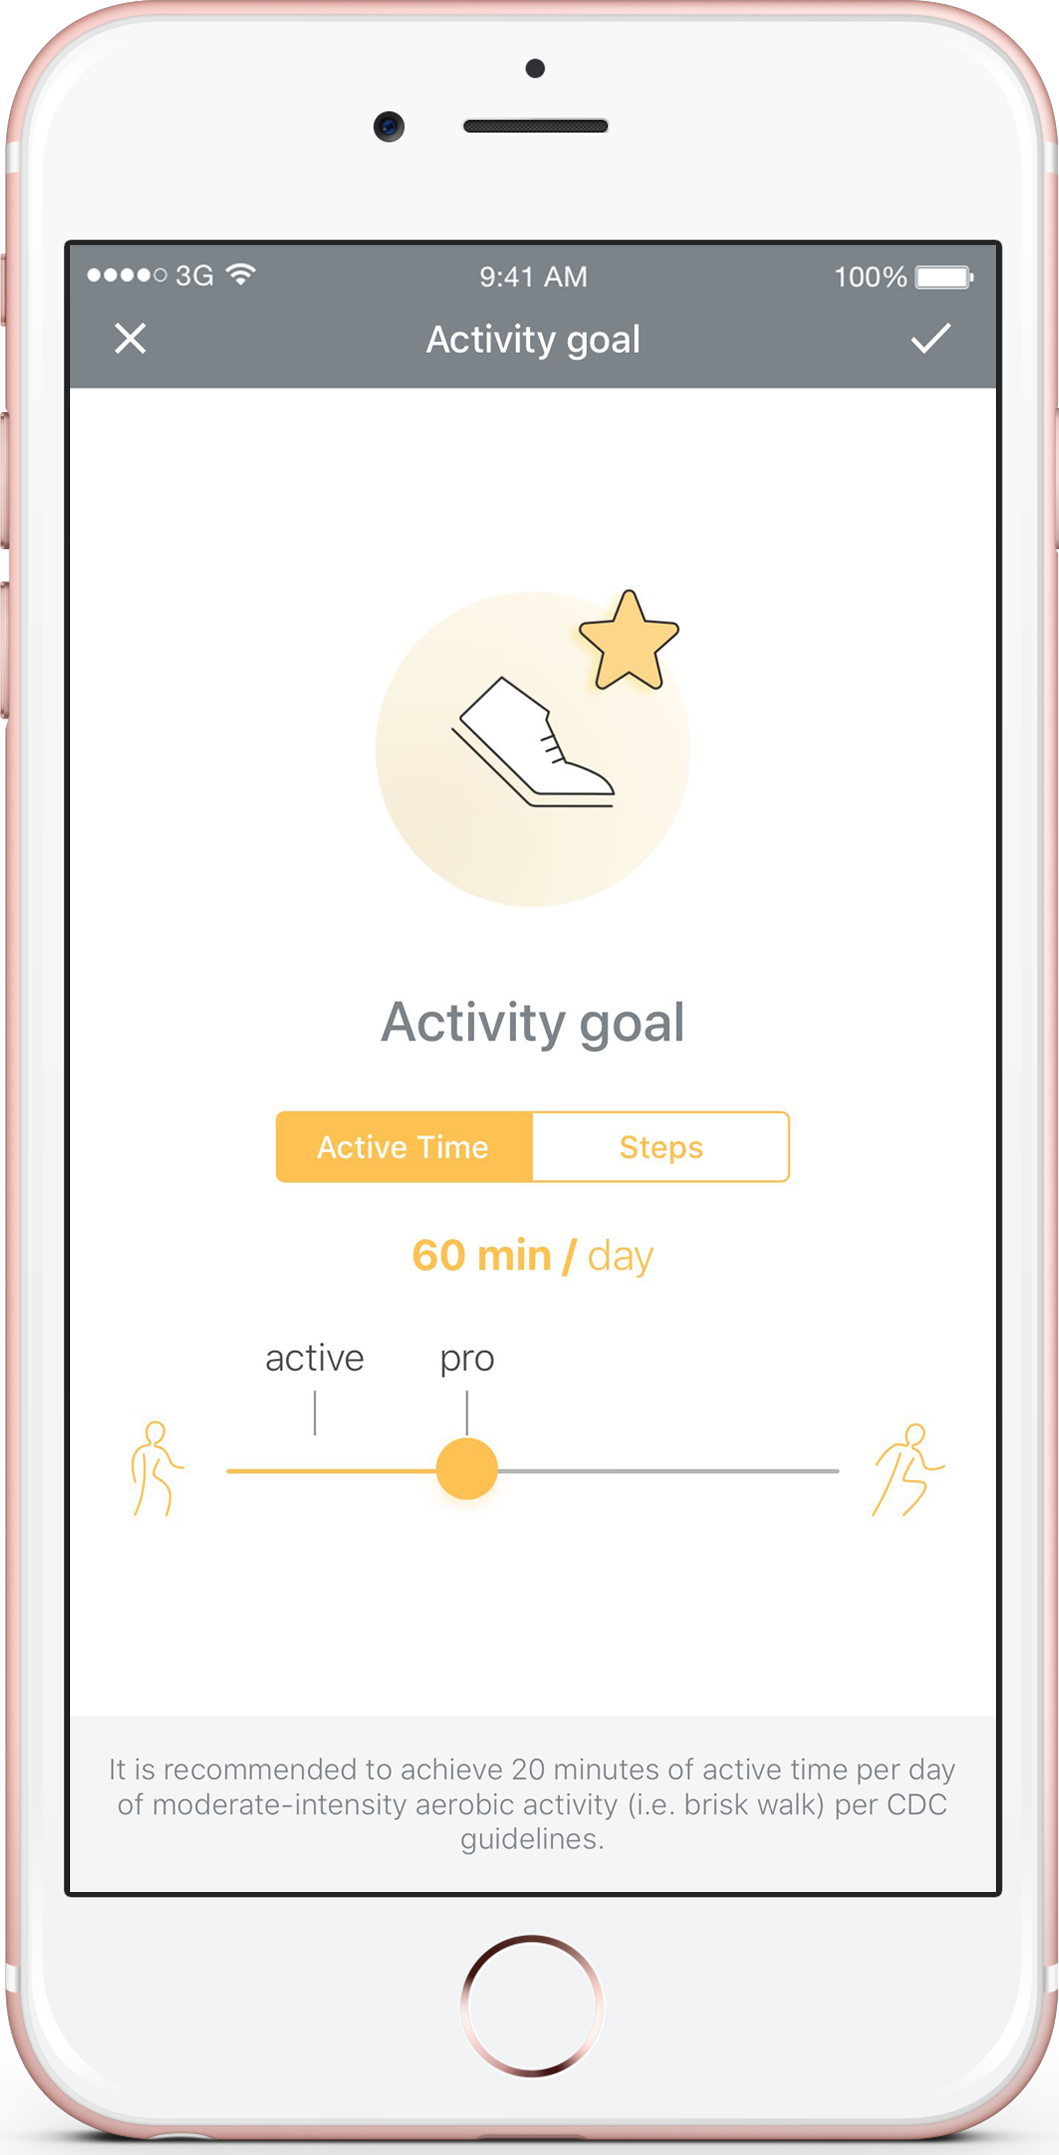 activity_goal.png